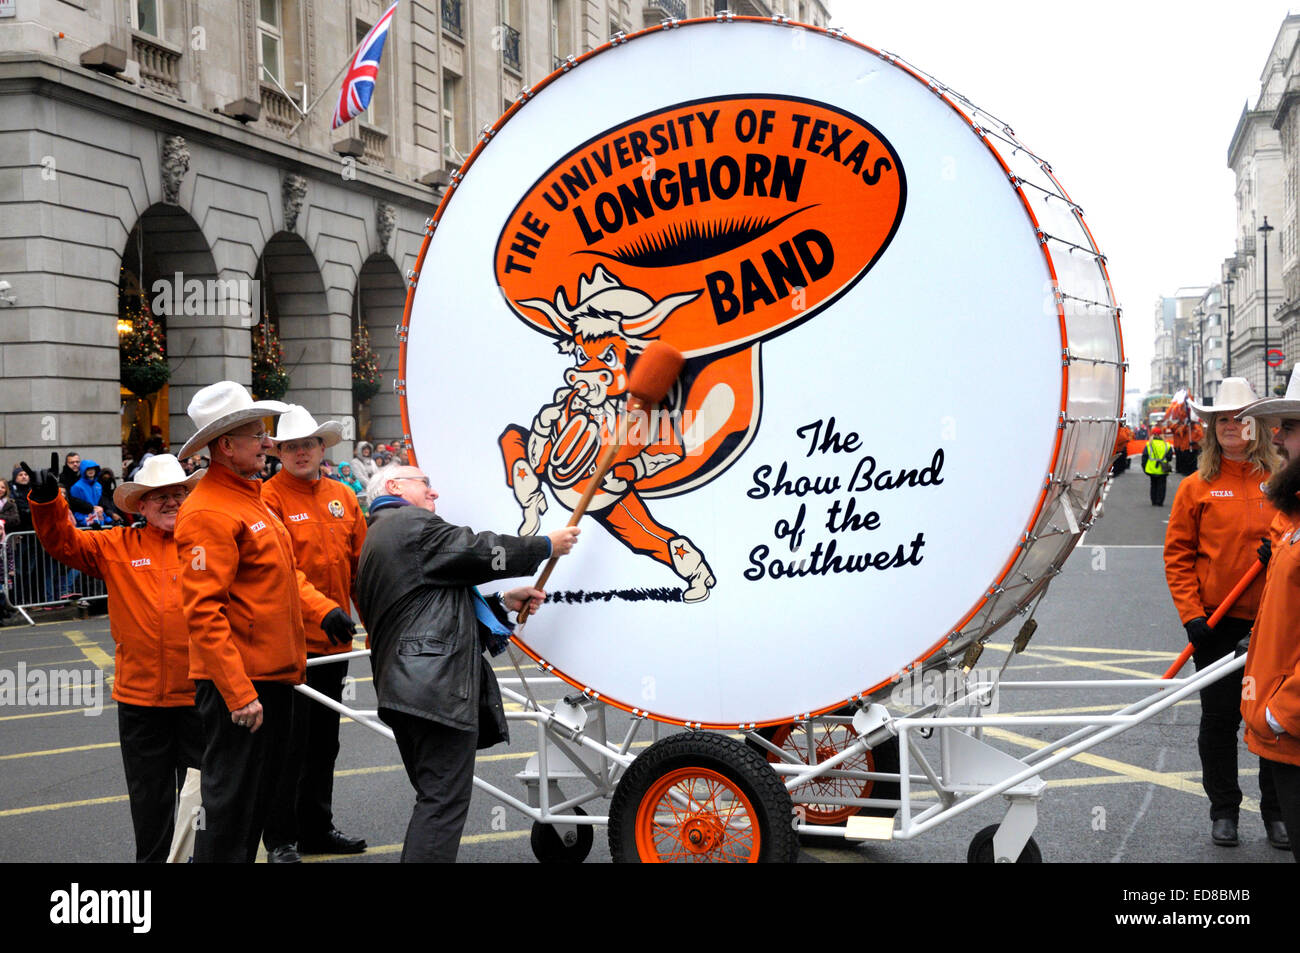 London, UK. 1st January, 2015. New Year's day Parade from Piccadilly to Parliament Square. Big Bertha - the - Stock Image